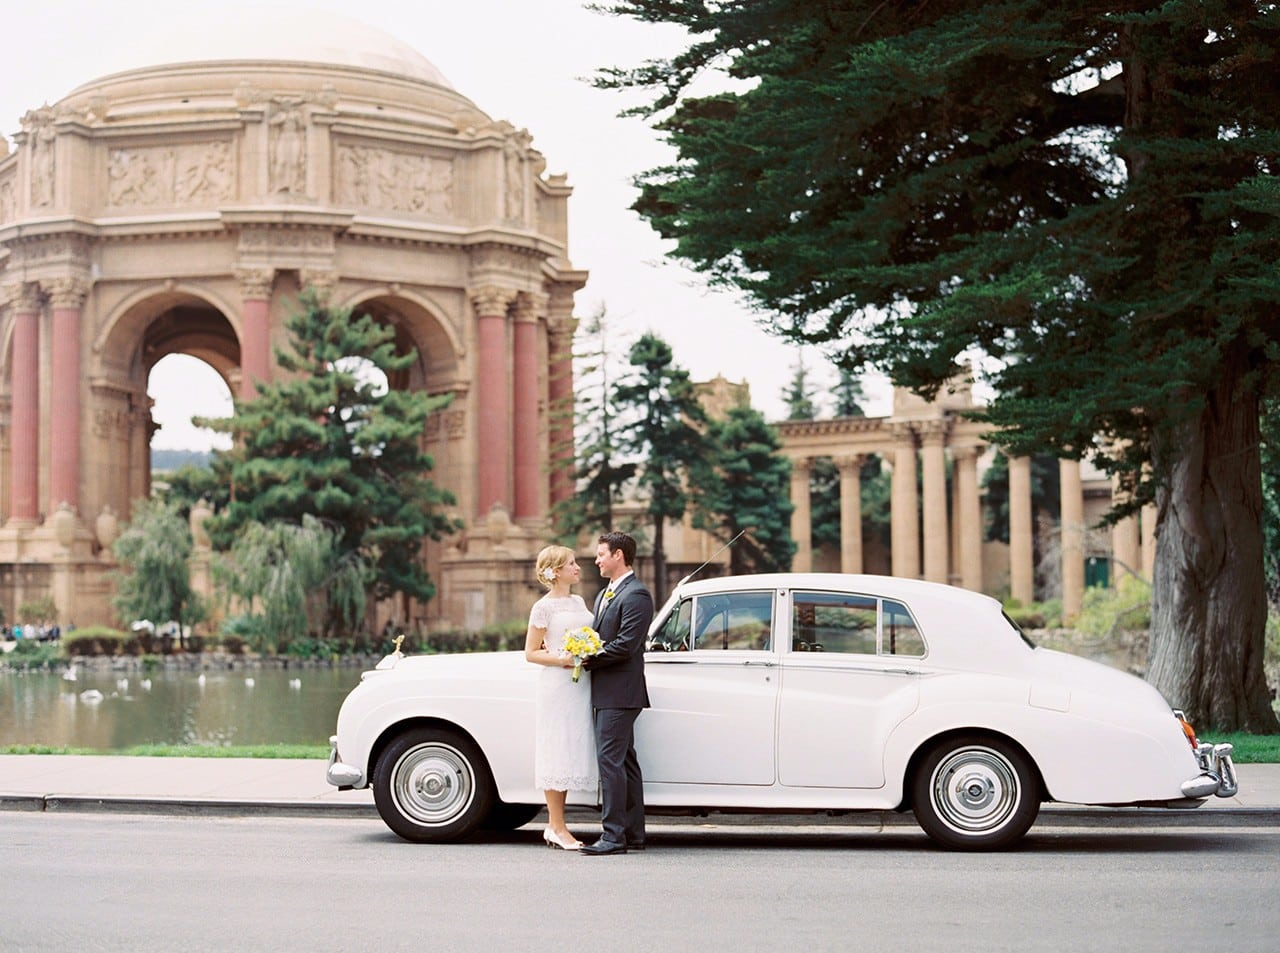 Bride and groom standing in front of a Rolls Royce at the Palace of Fine Arts in San Francisco